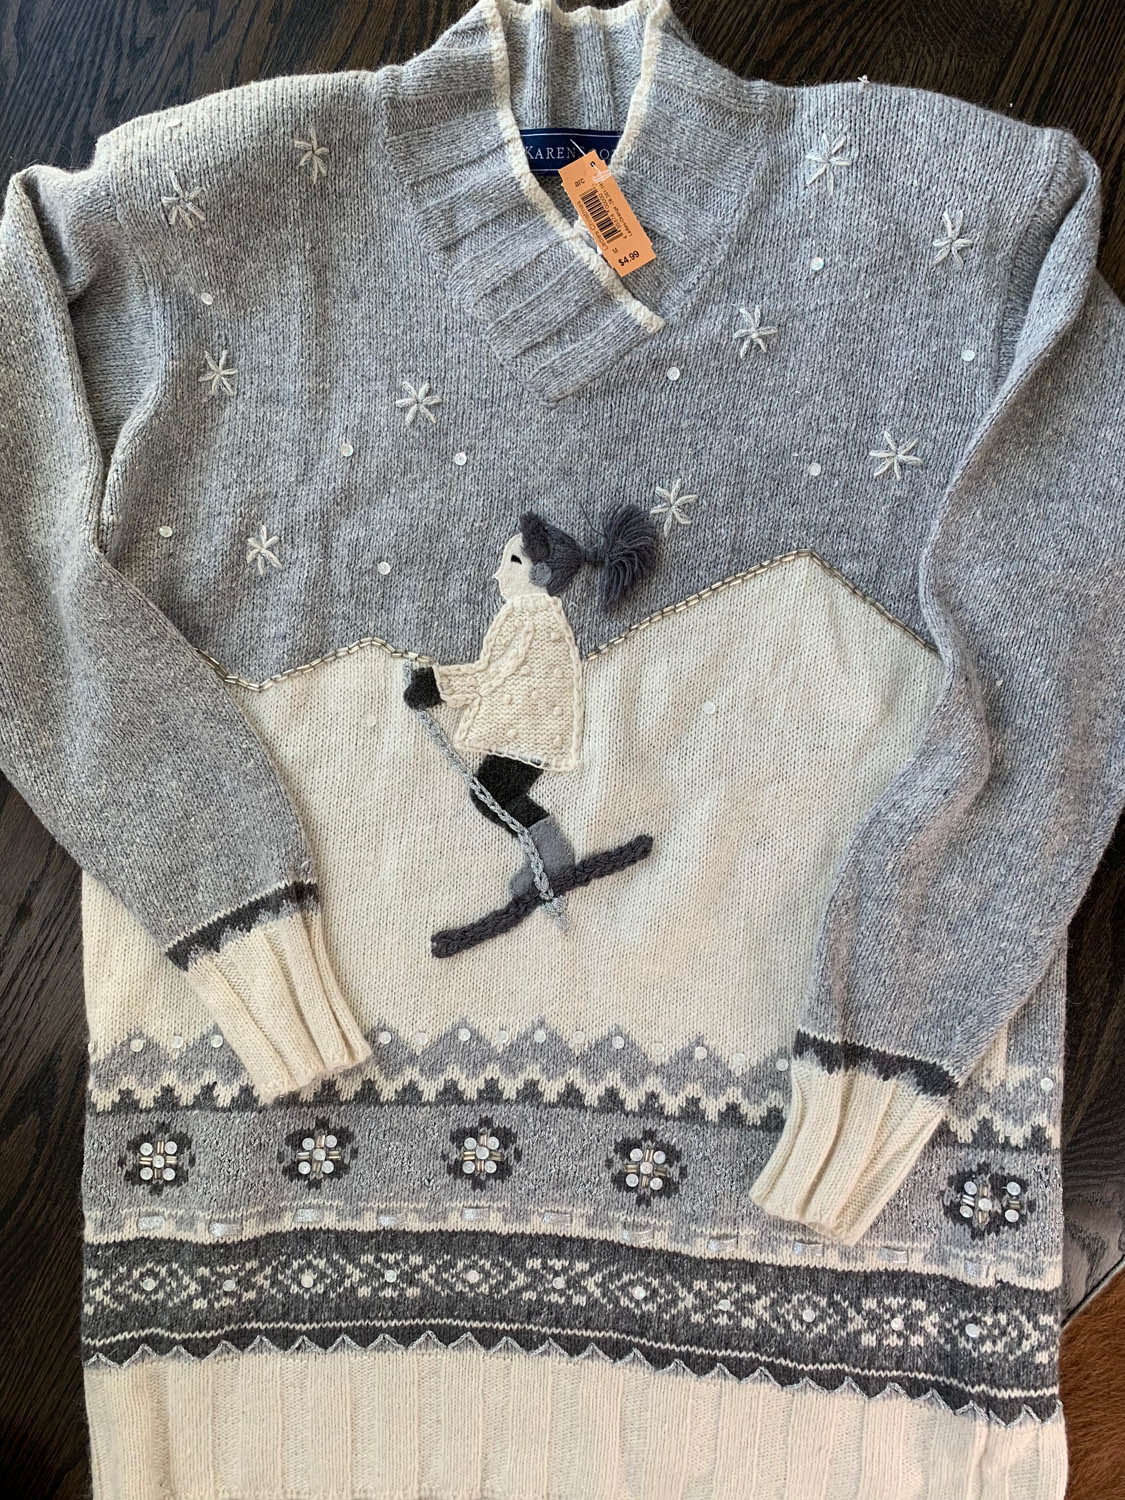 Holiday sweater found at thrift store to make an upcycled pillow; gray and white with girl skiing.